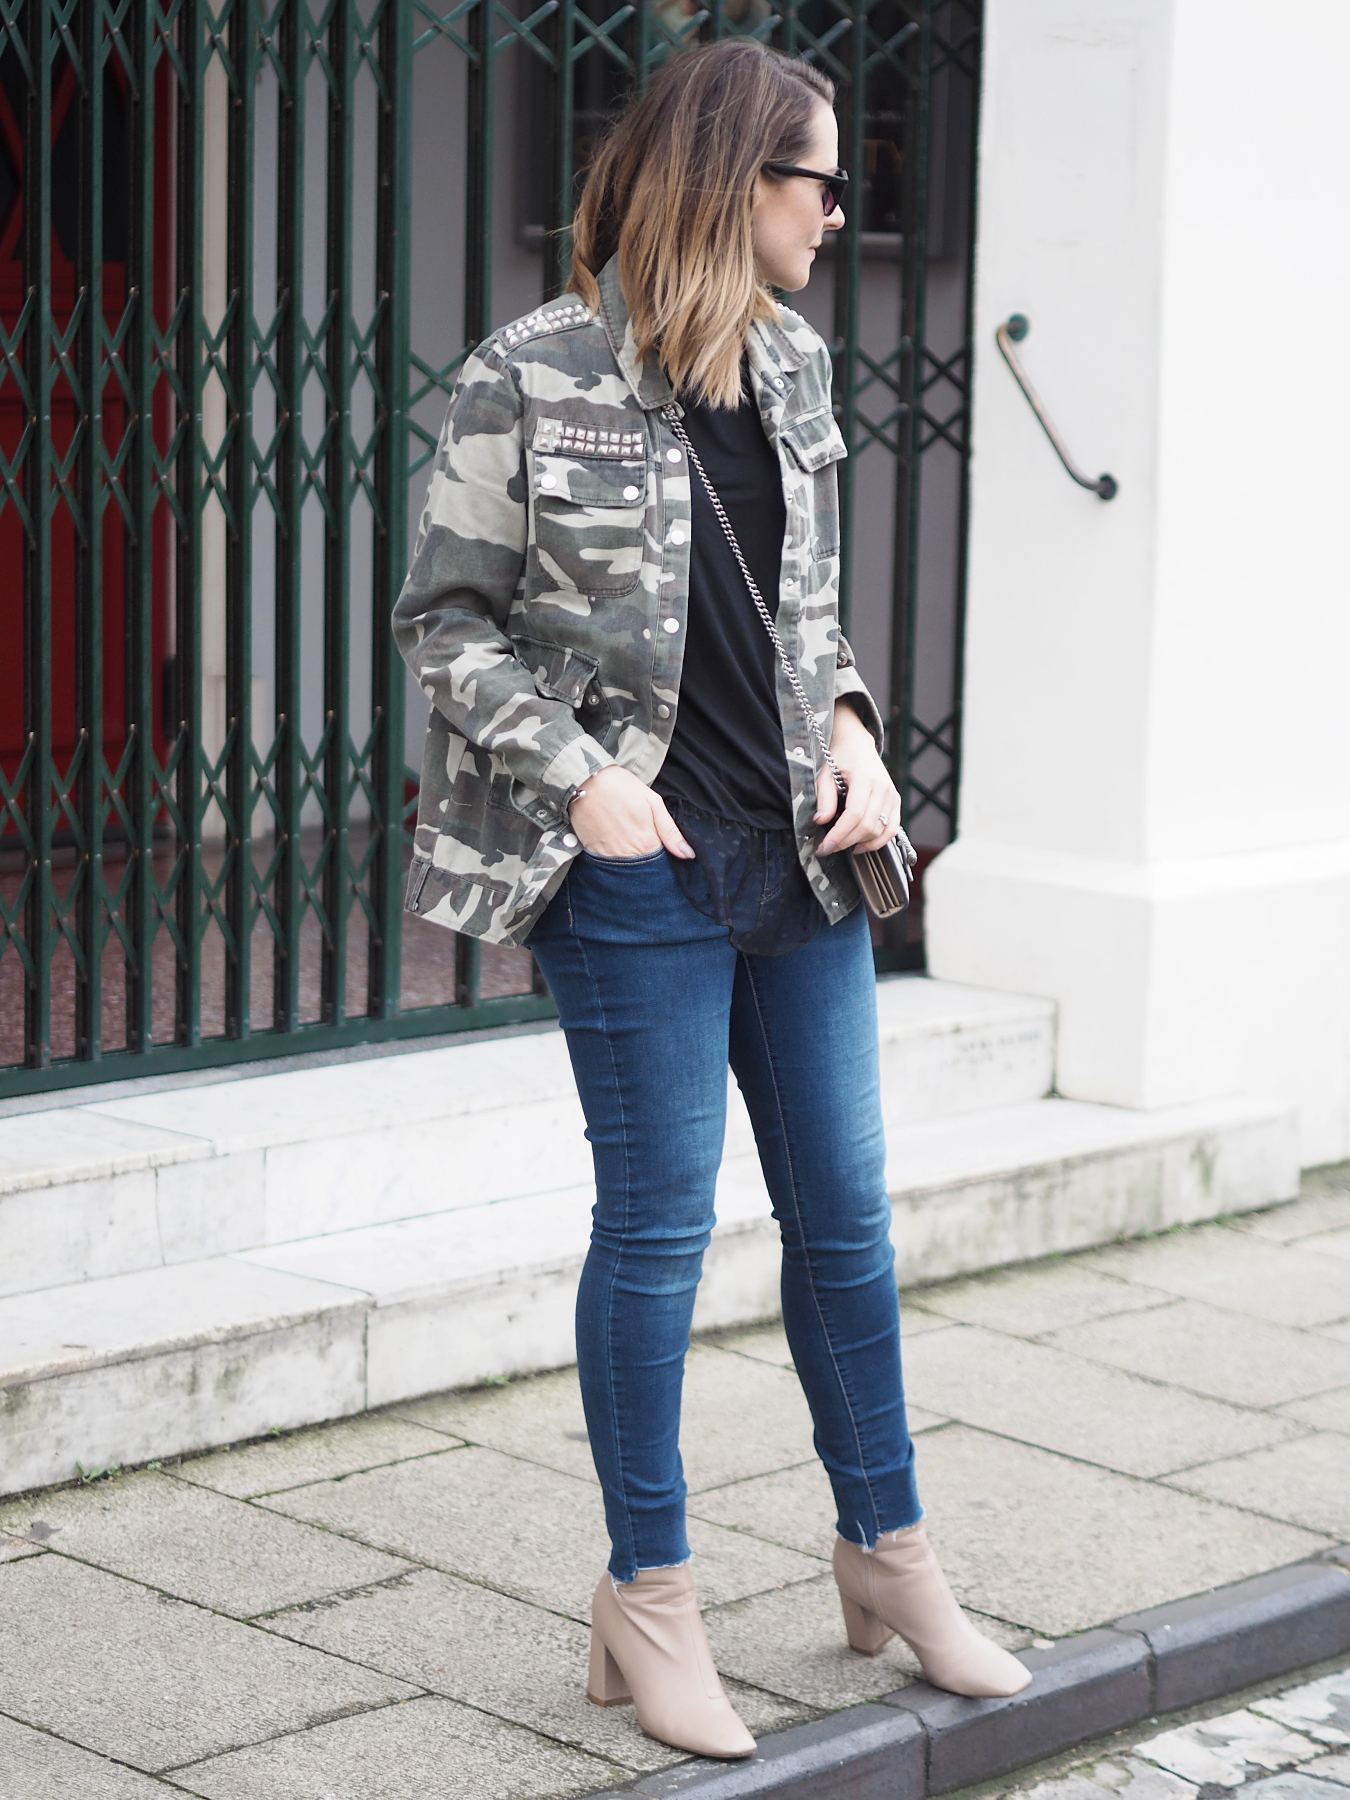 camo jacket and jeans outfit